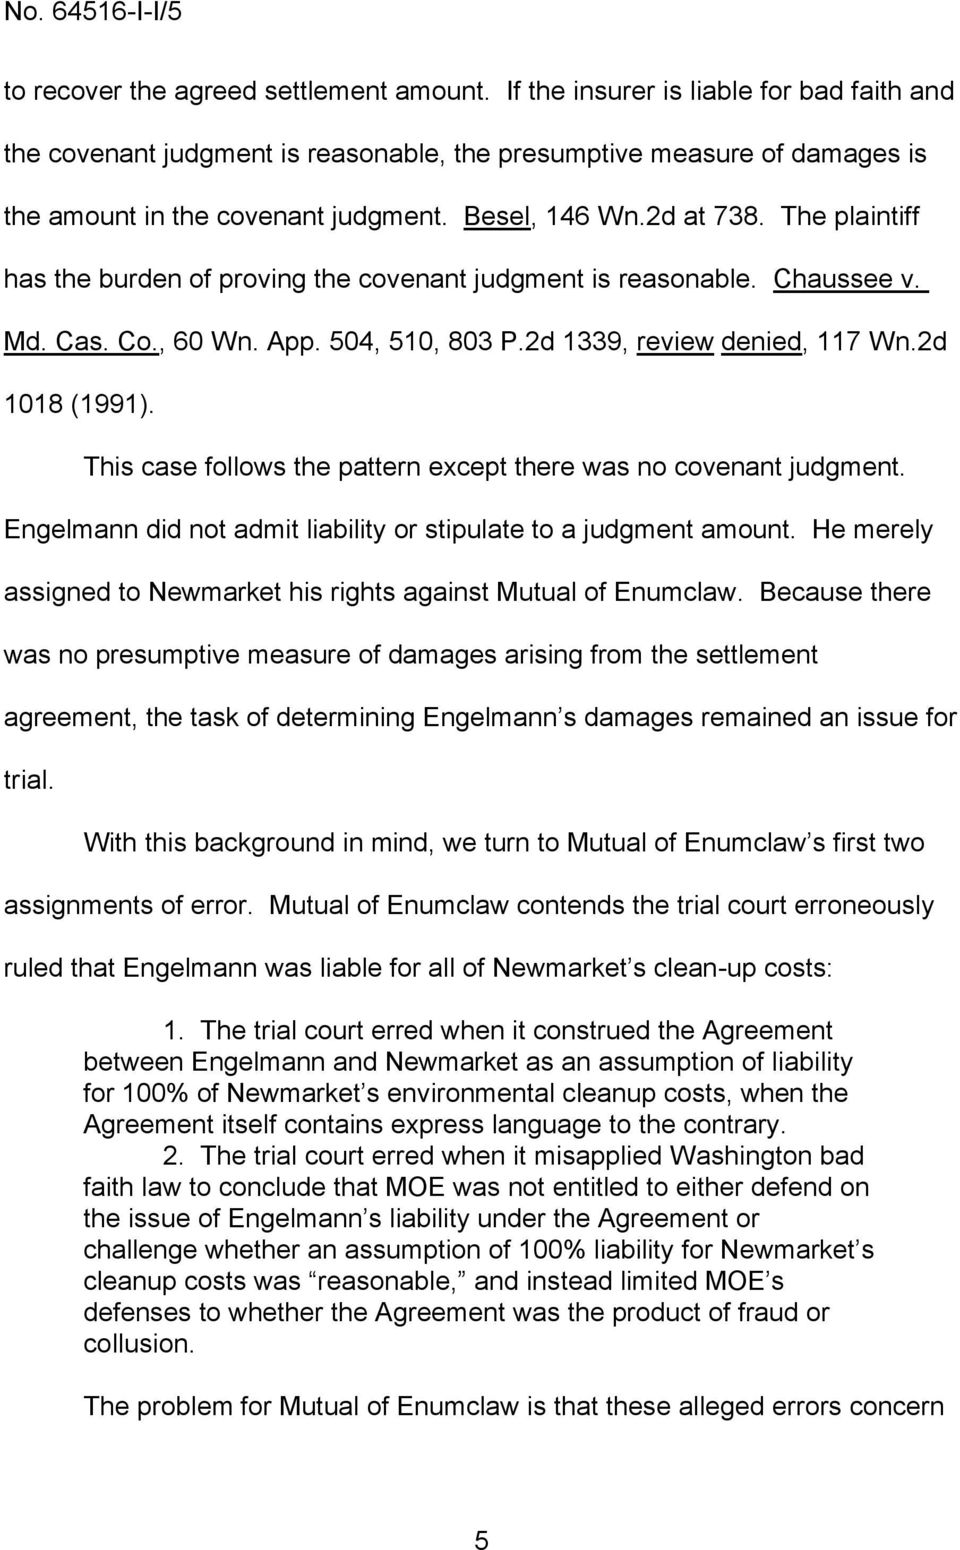 The plaintiff has the burden of proving the covenant judgment is reasonable. Chaussee v. Md. Cas. Co., 60 Wn. App. 504, 510, 803 P.2d 1339, review denied, 117 Wn.2d 1018 (1991).